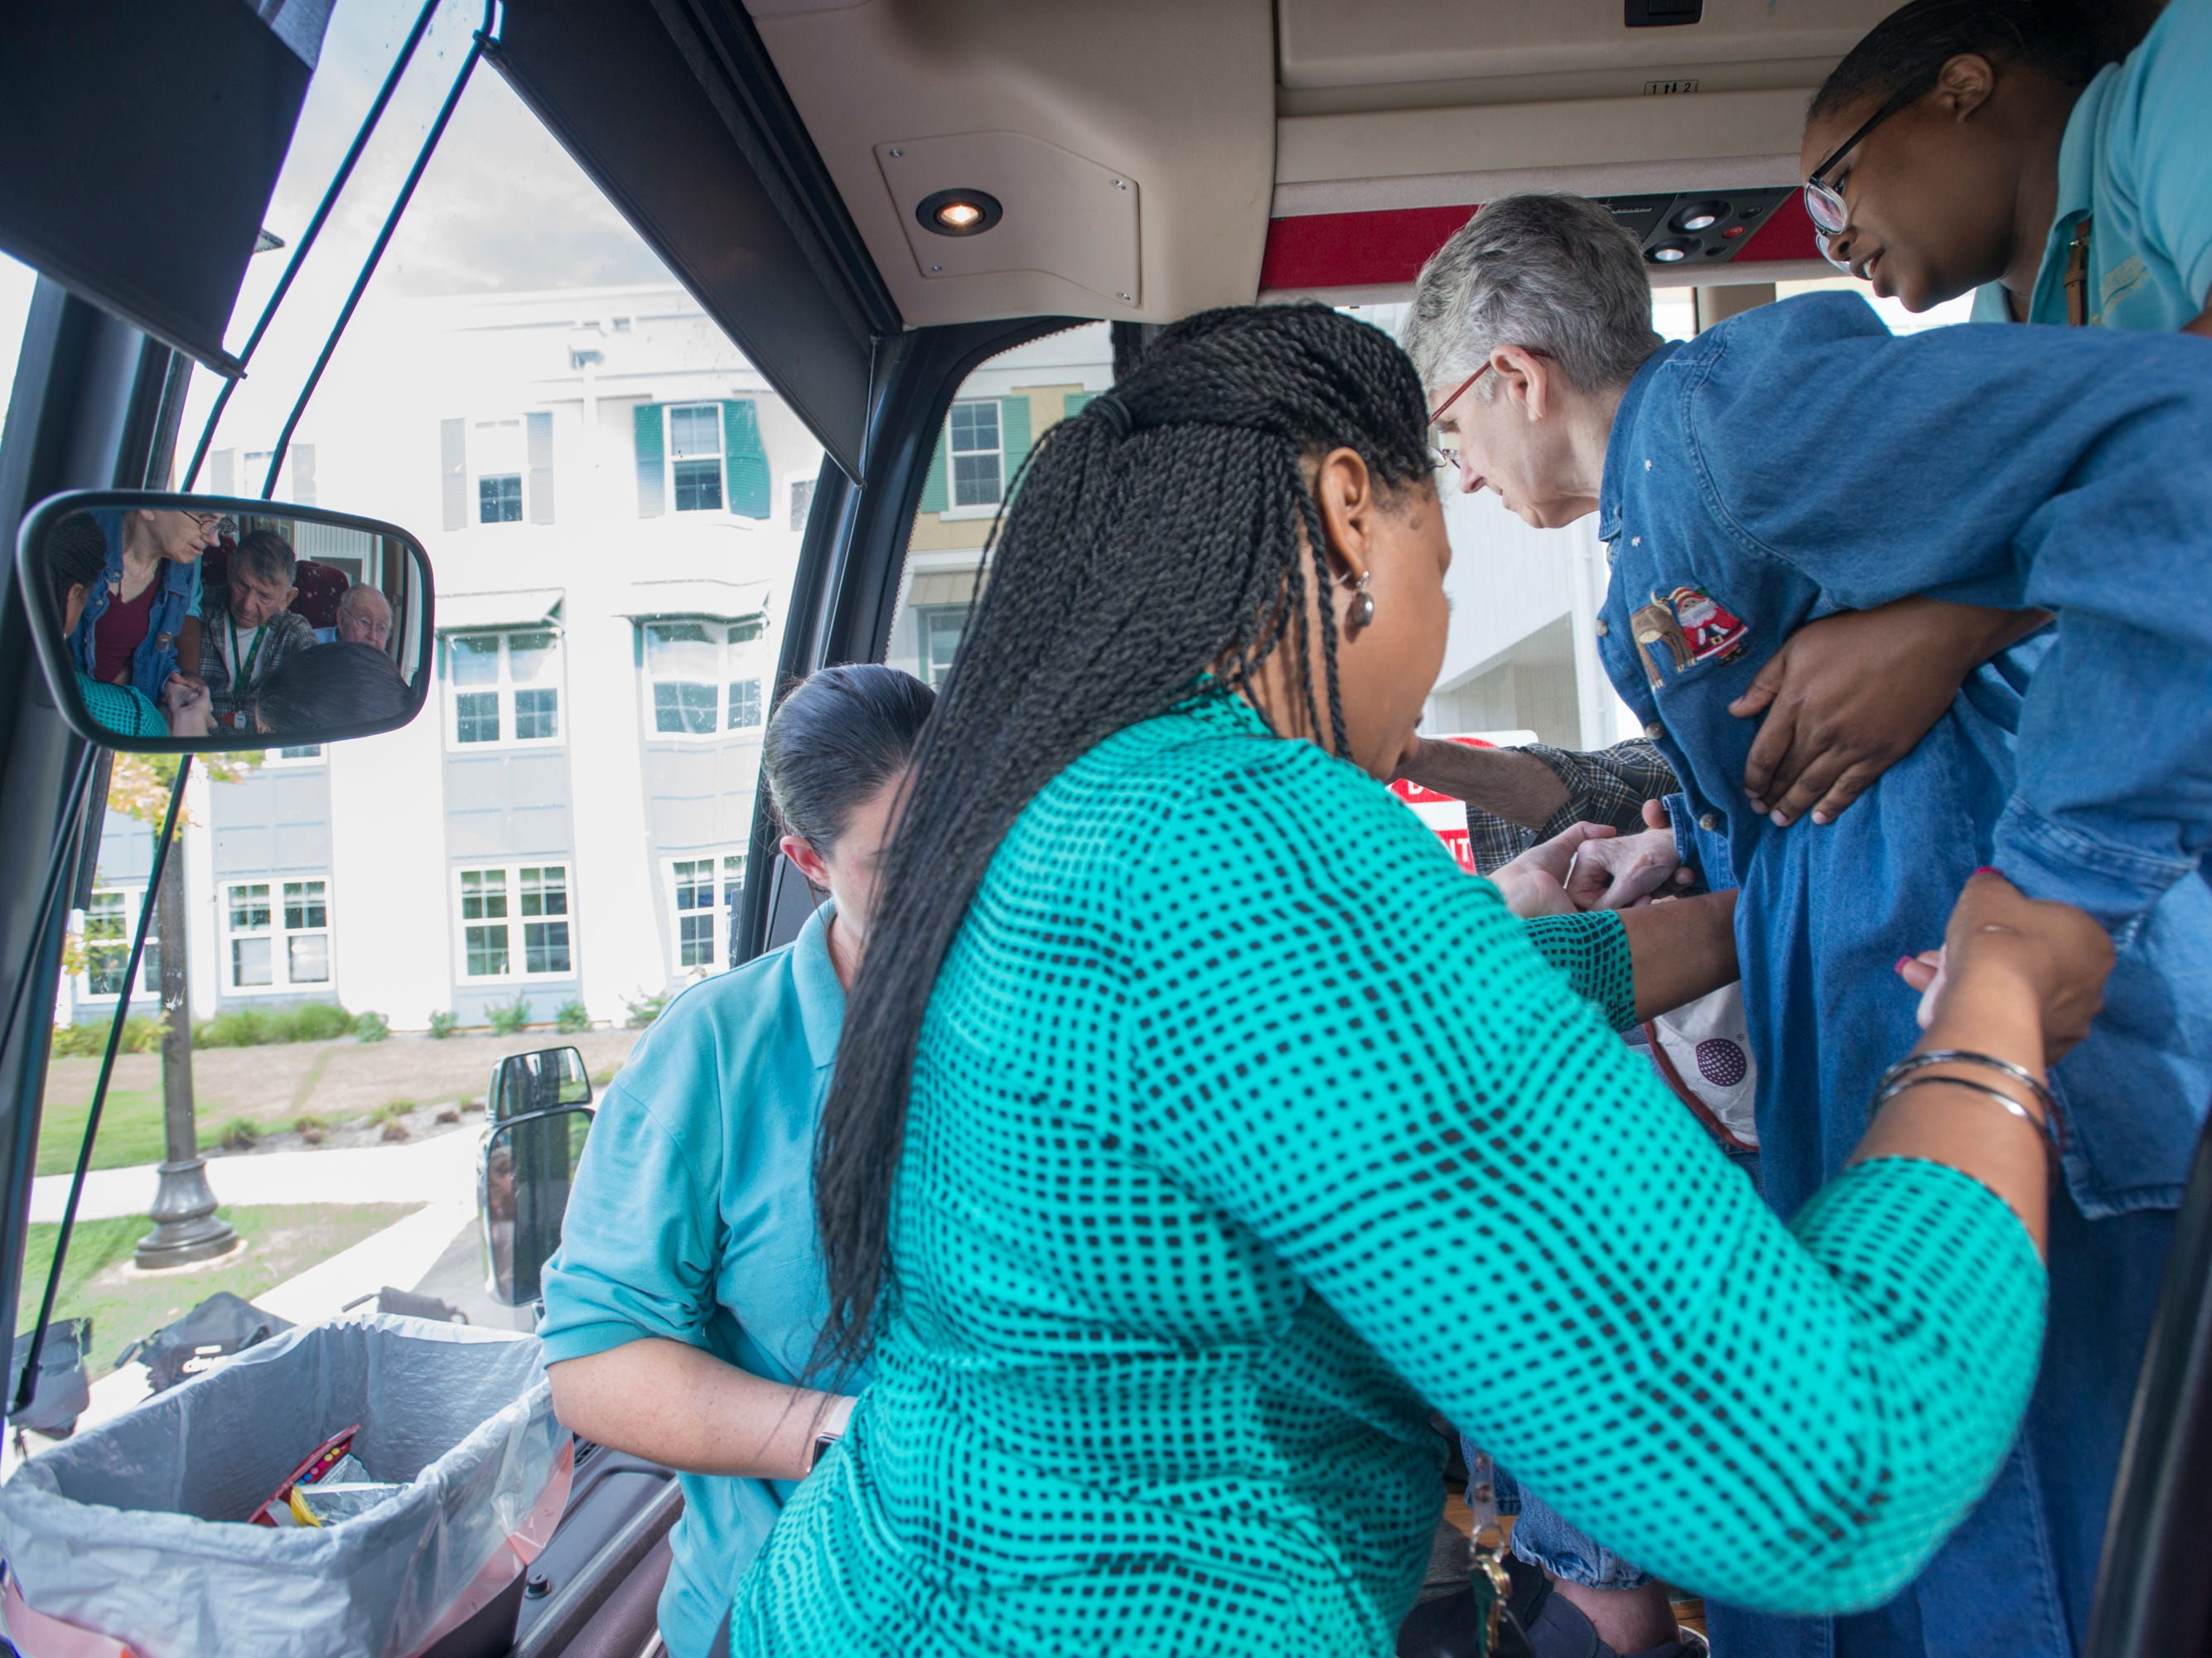 Superior Residences of Panama City Beach resident Vicki Boatwright, center, is helped off a bus at the Arbors of Gulf Breeze senior living community in Gulf Breeze on Tuesday, October 9, 2018.  Residents and staff from Panama City Beach were evacuated to this sister community as Hurricane Michael approaches the Florida panhandle.